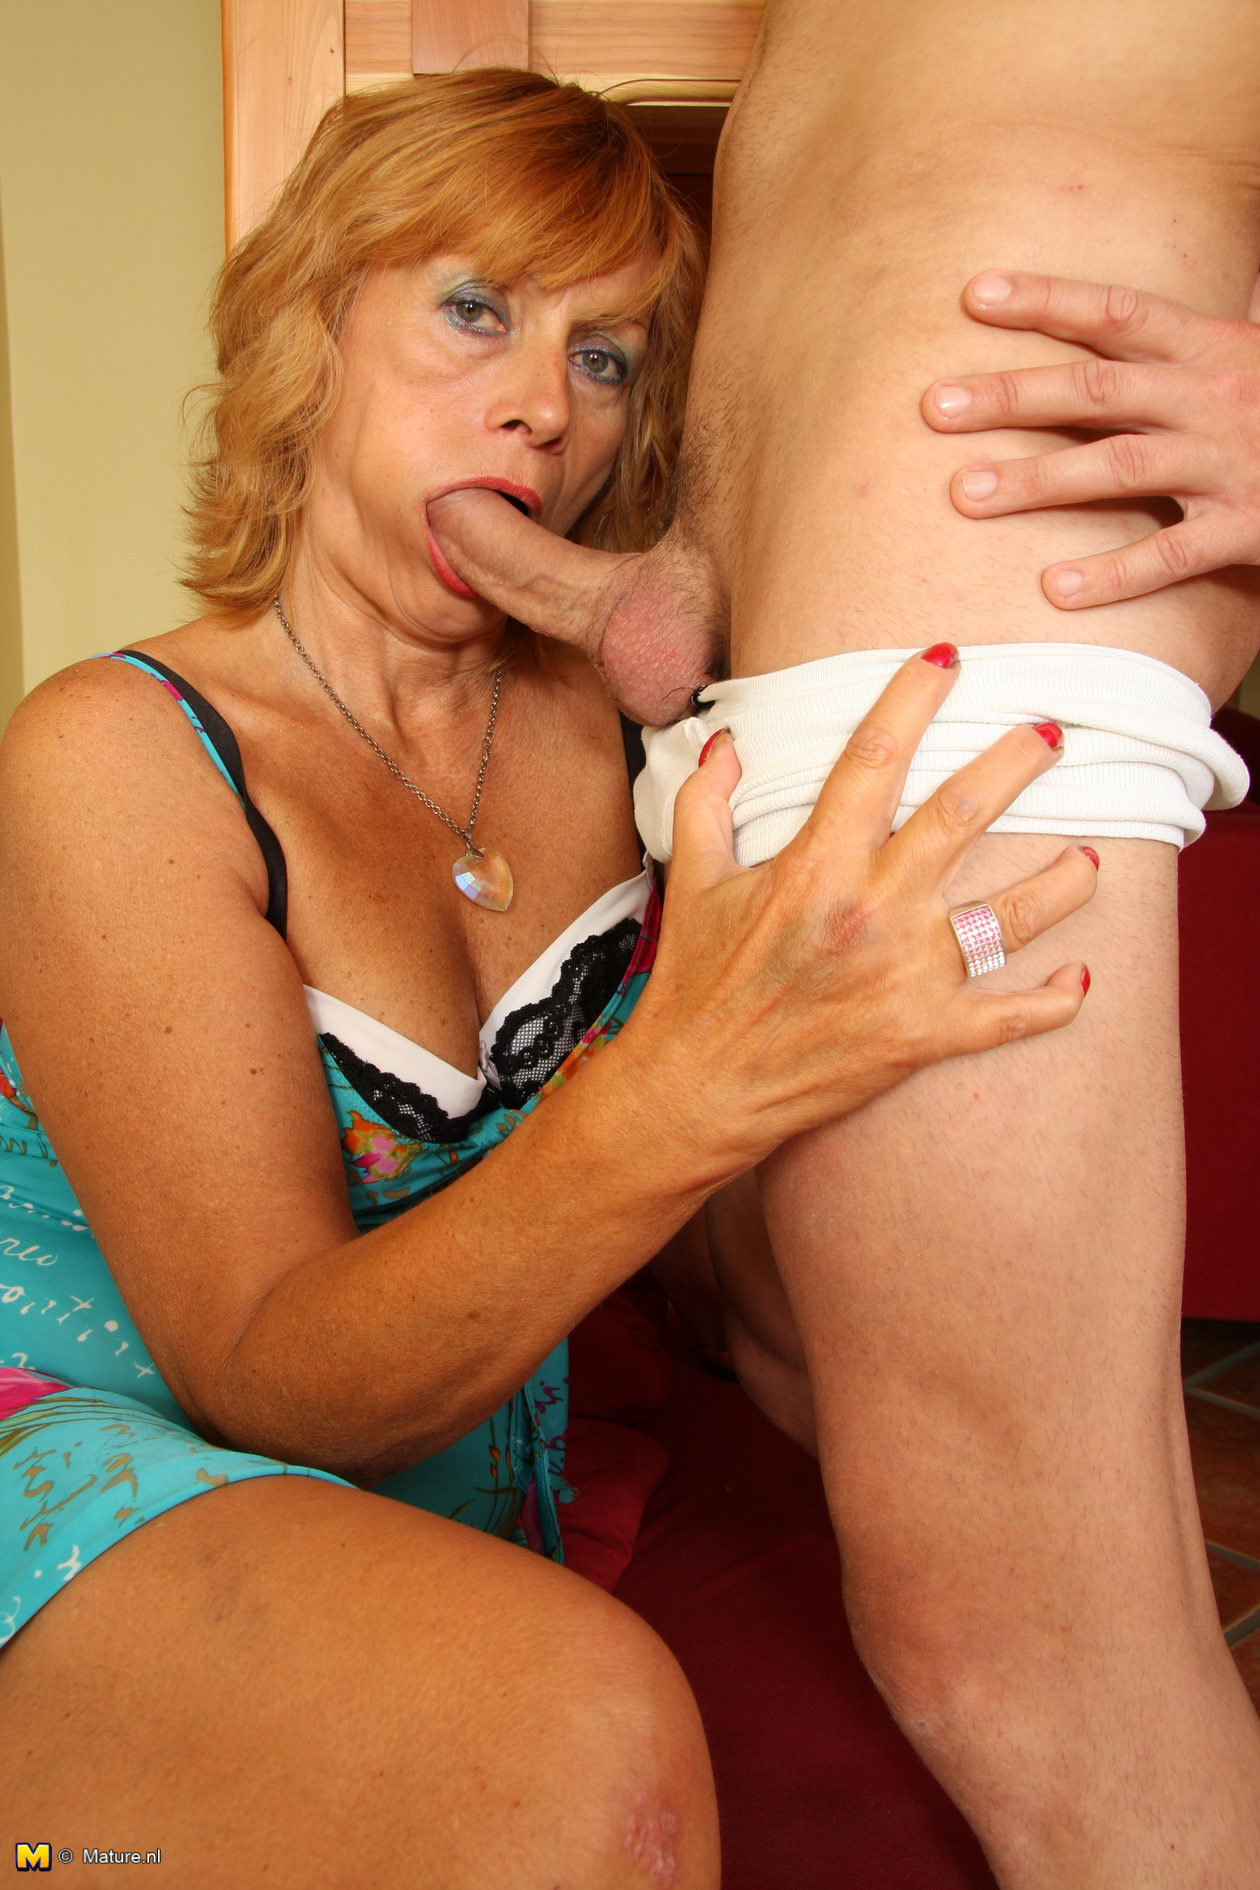 Fisting enema mistress Photos